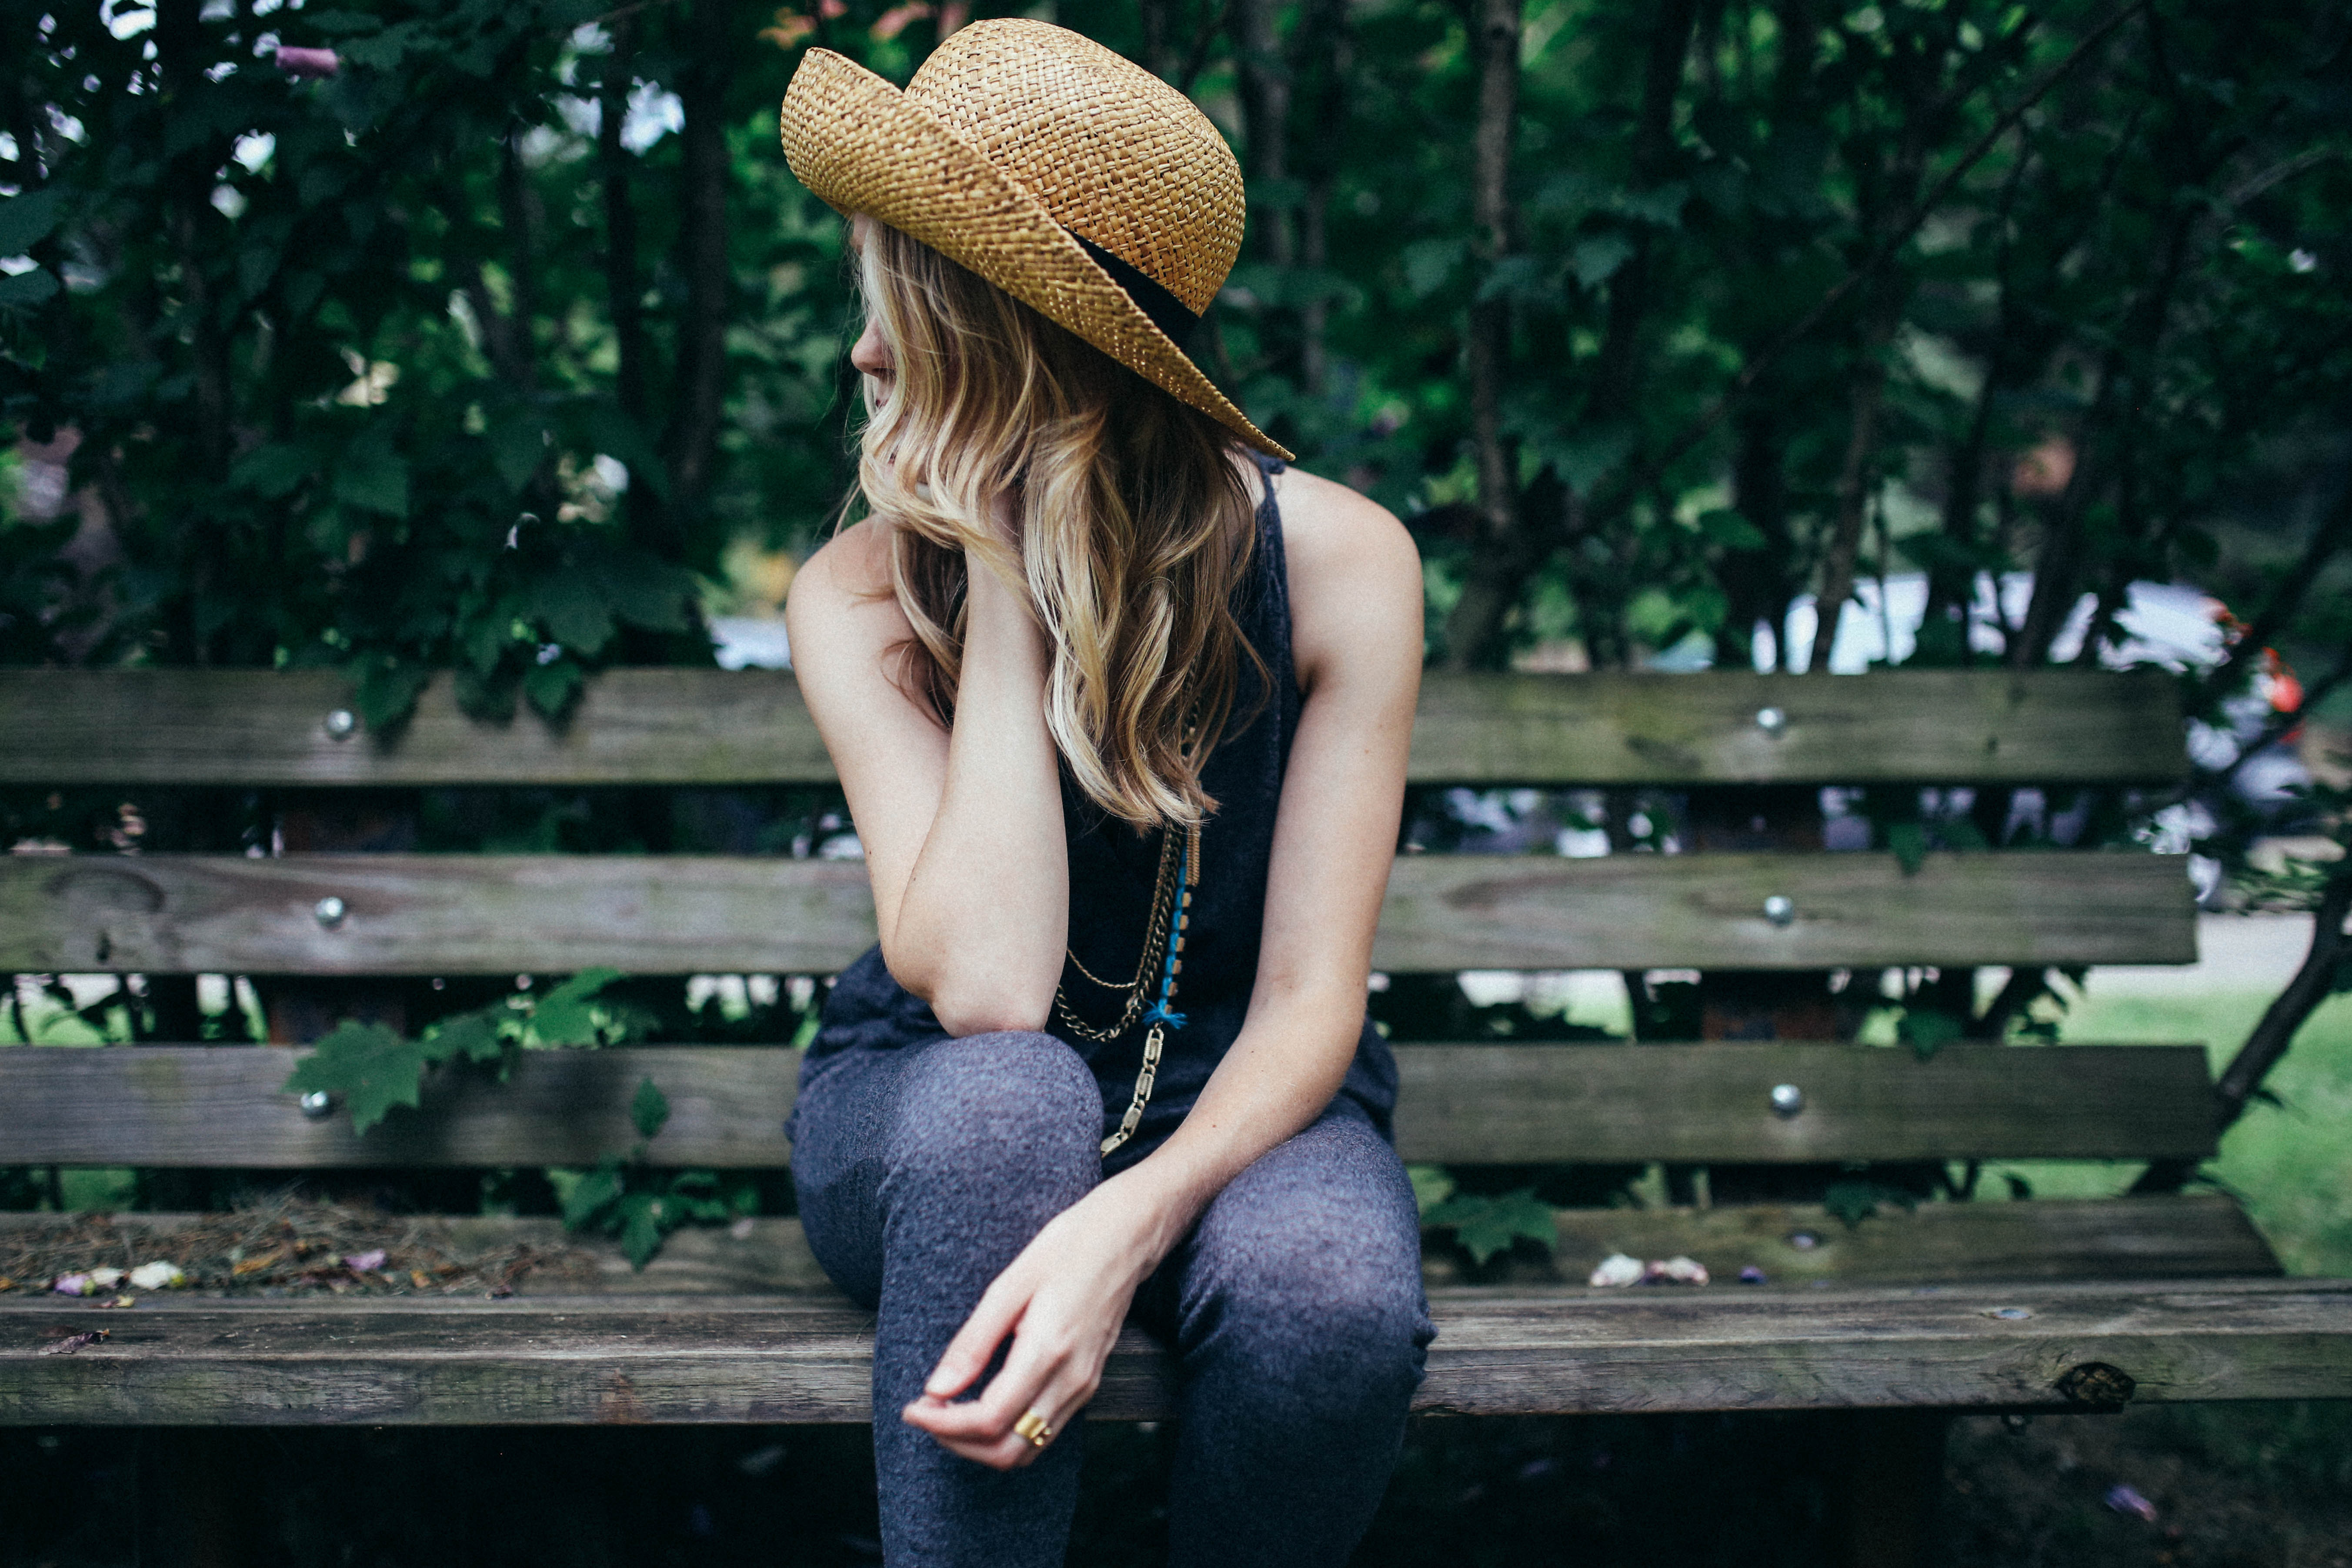 woman on park bench thinking, micro-targeting, new audiences, reaching out to new audiences, expanding audience, marketing trends 2015, garden media group, business trends